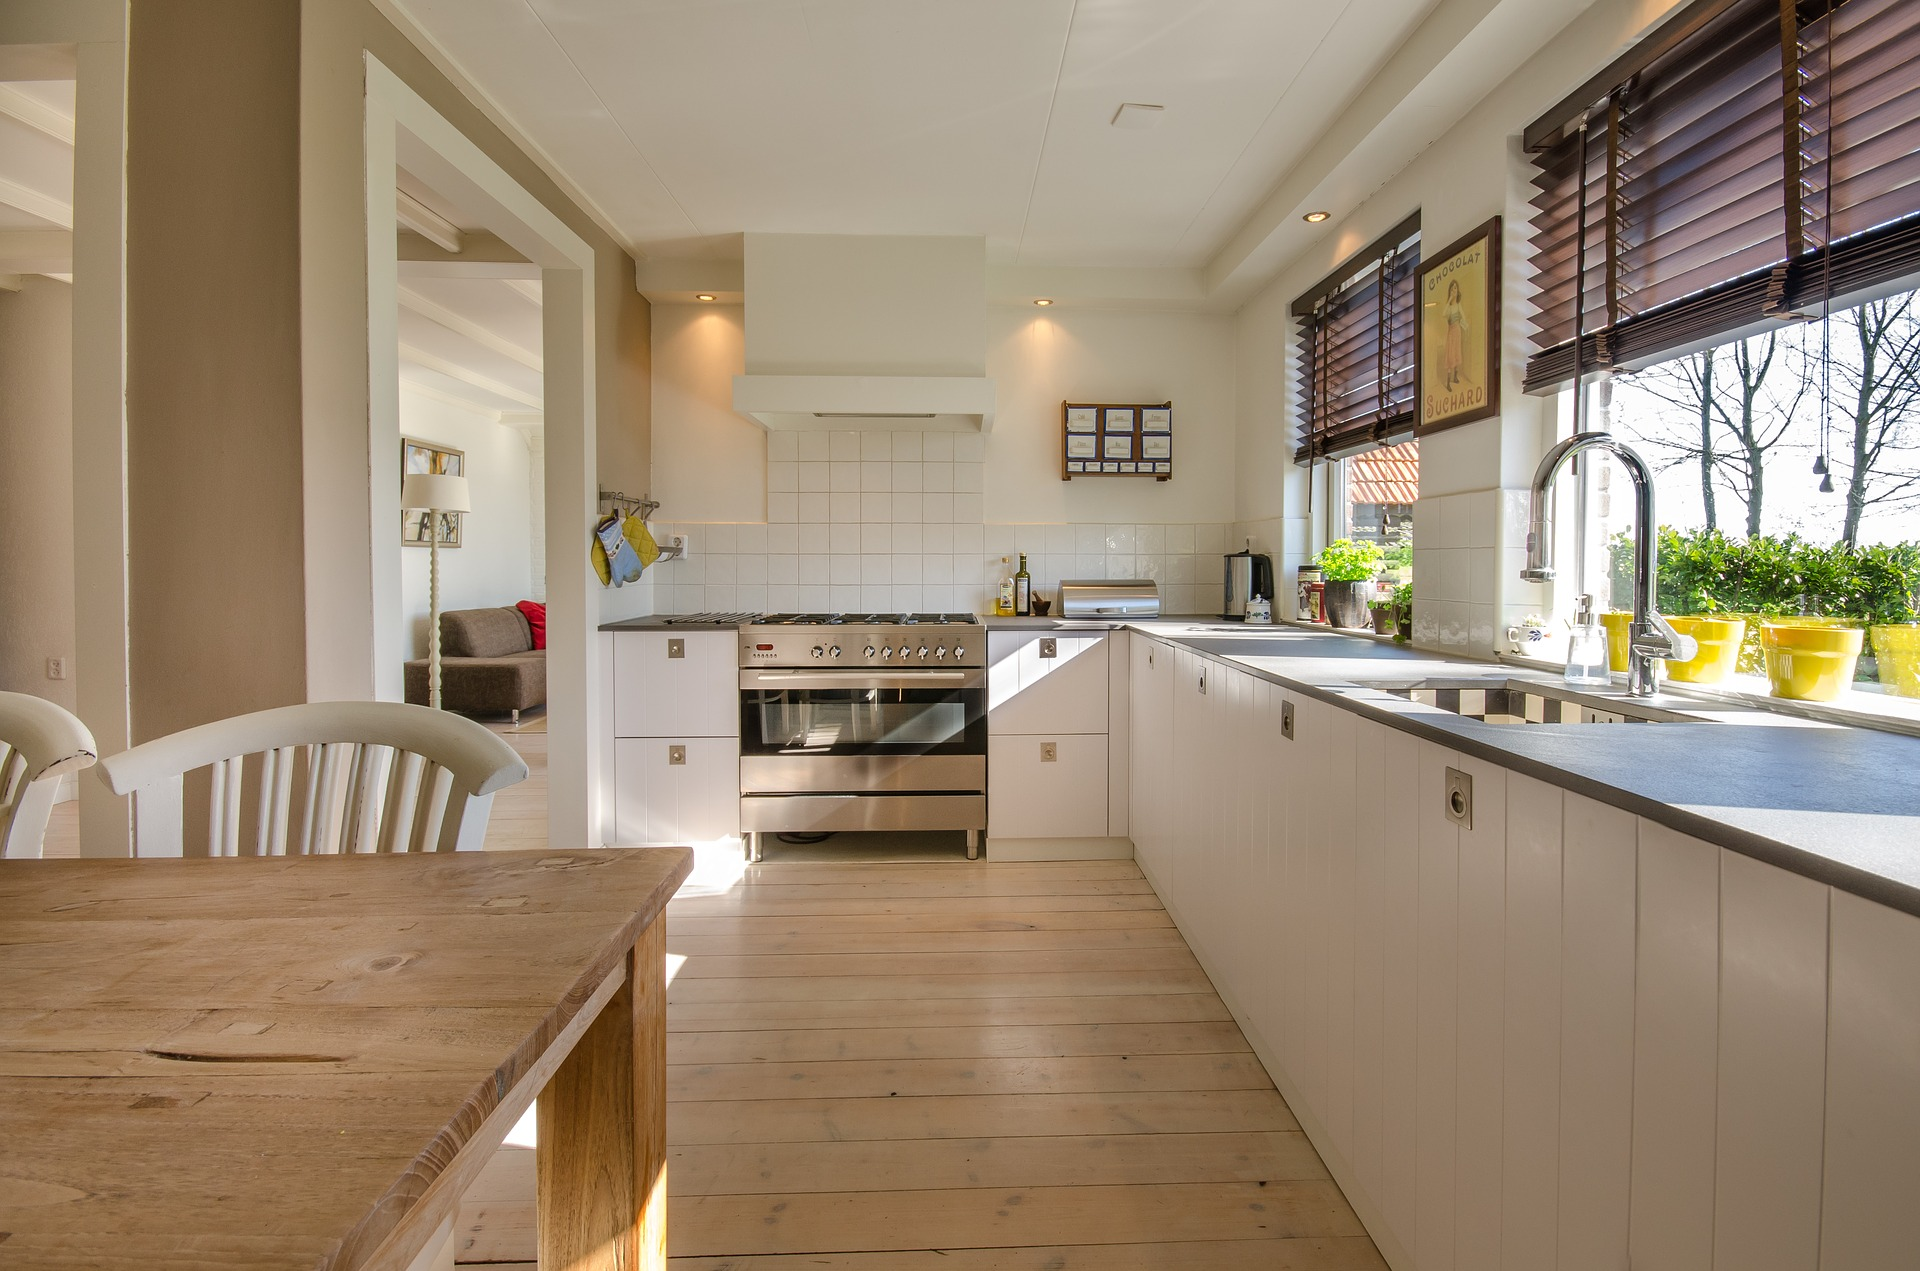 Make The Most Of Your Country Homes Kitchen Space! 7 Time-tested Organizing Tips